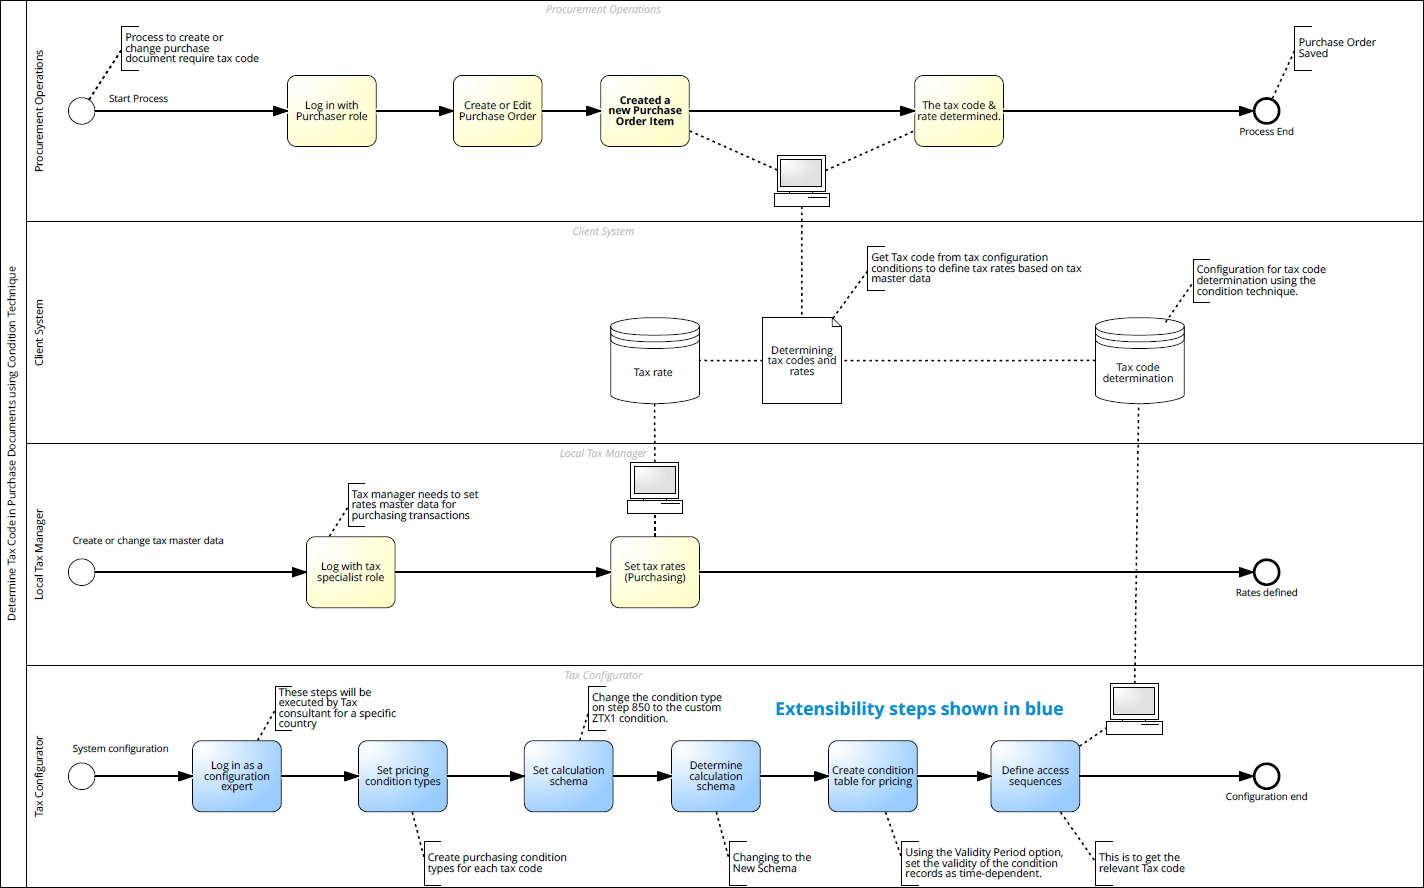 Simplified%20Business%20Process%20and%20Application%20Configuration%20Flows